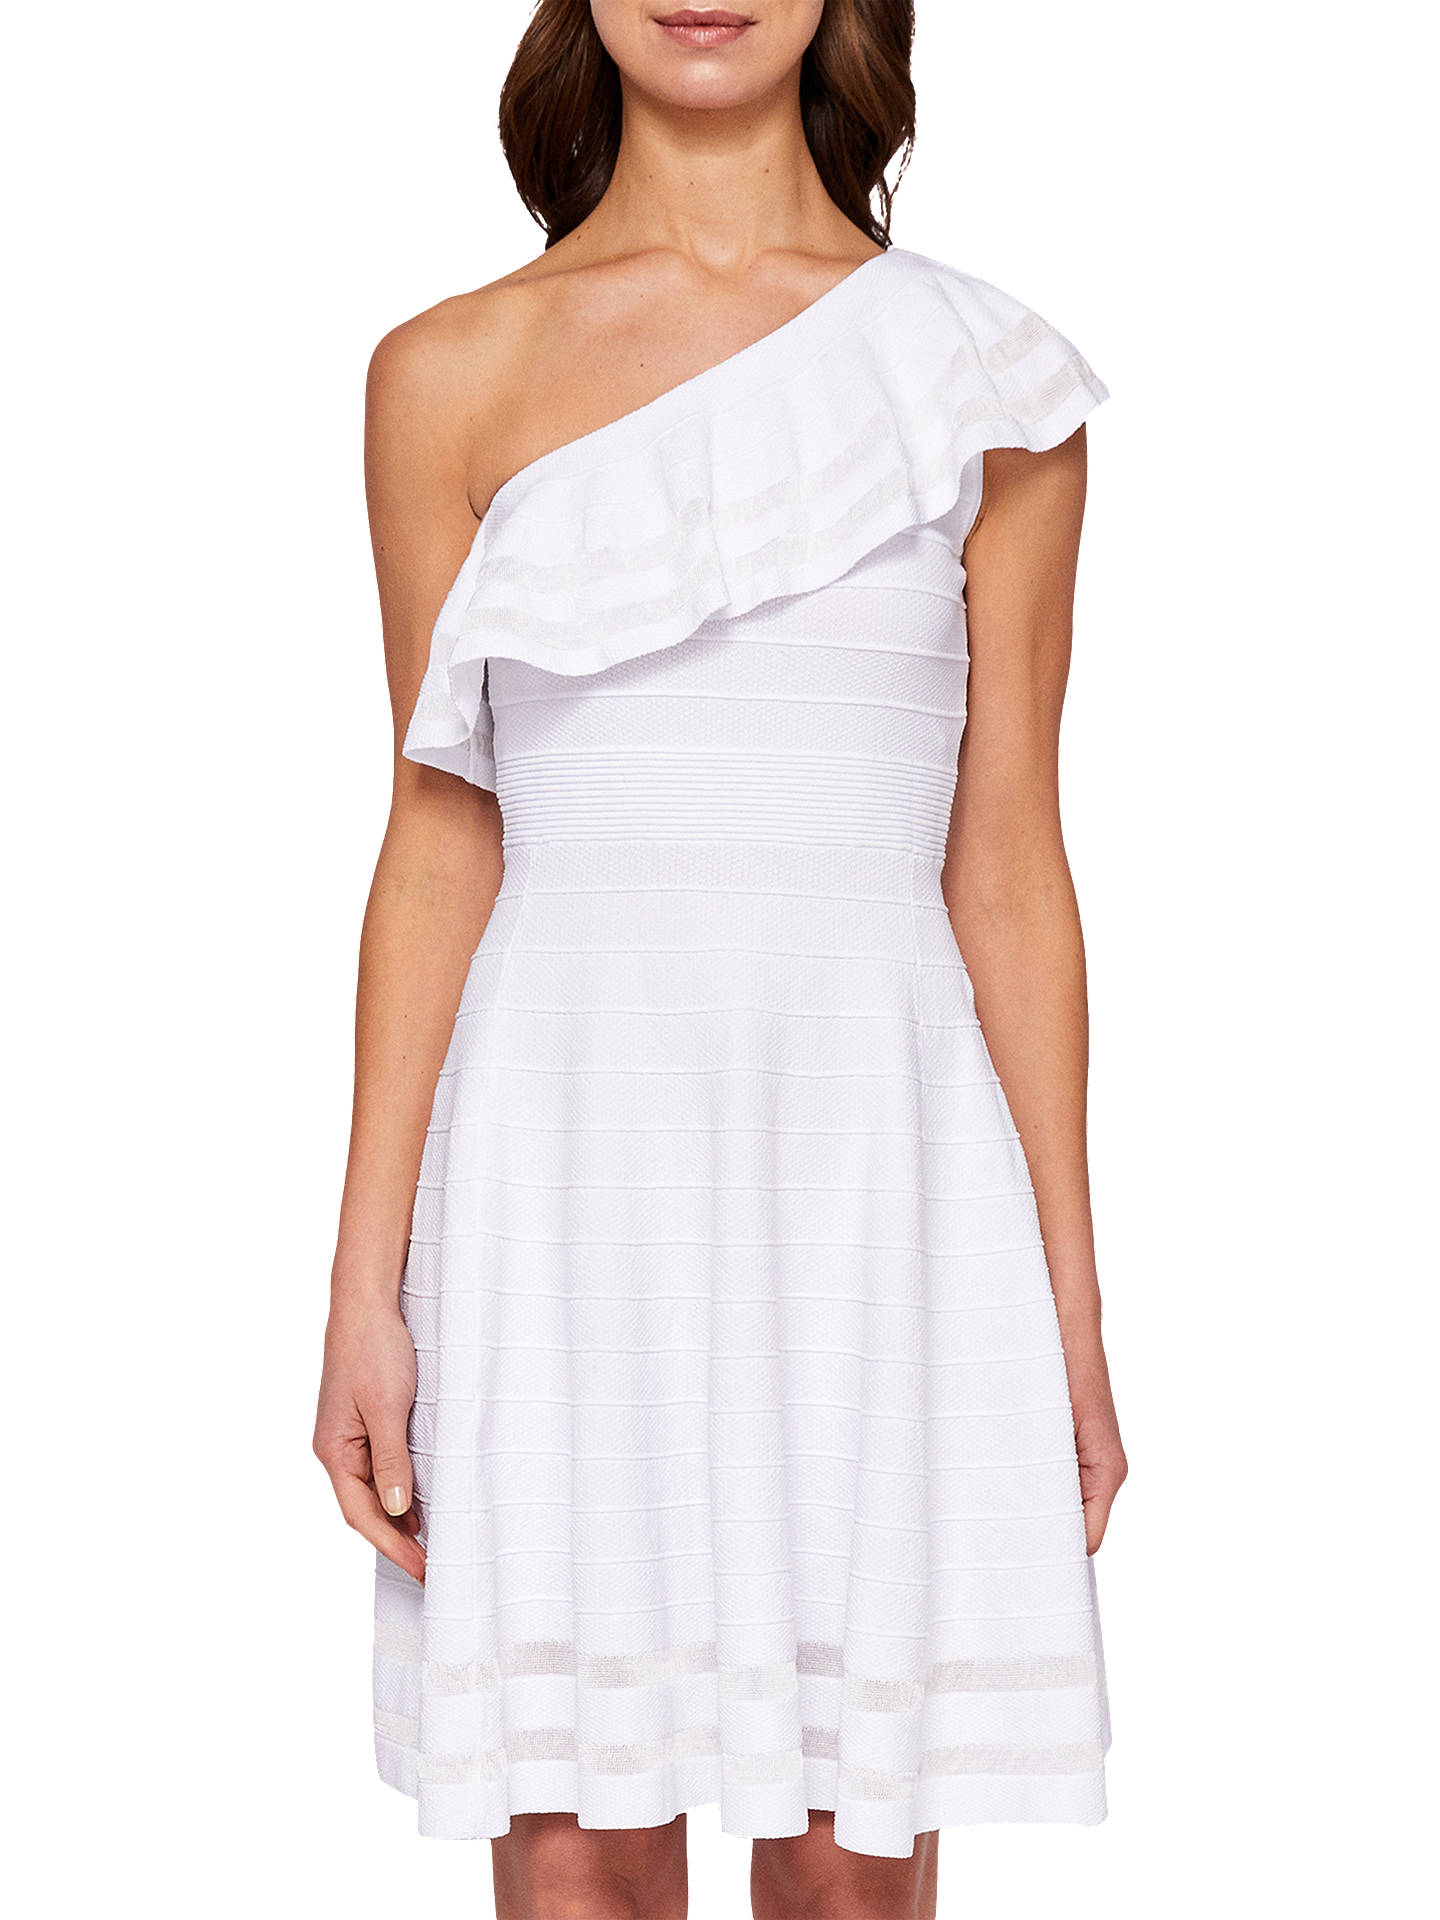 73dd04267f6fa4 Ted Baker Streena One Shoulder Knitted Dress at John Lewis   Partners